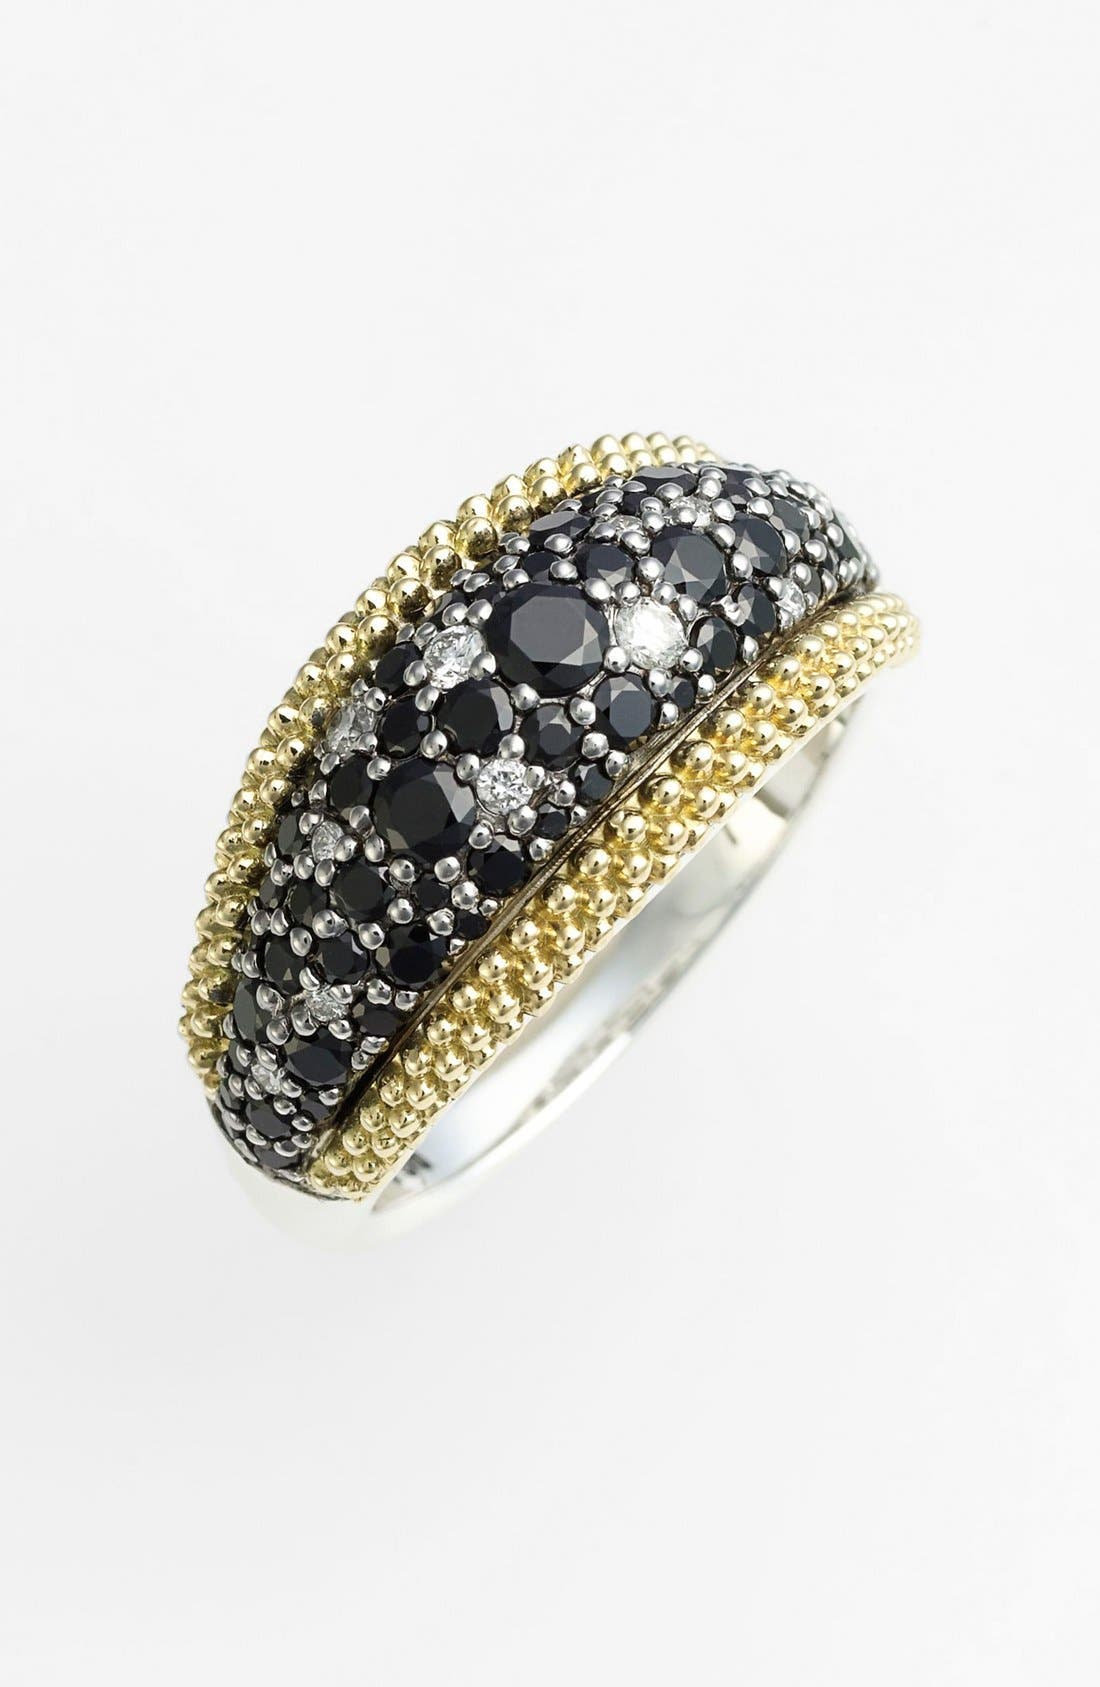 Main Image - Lagos 'Nightfall' Band Ring